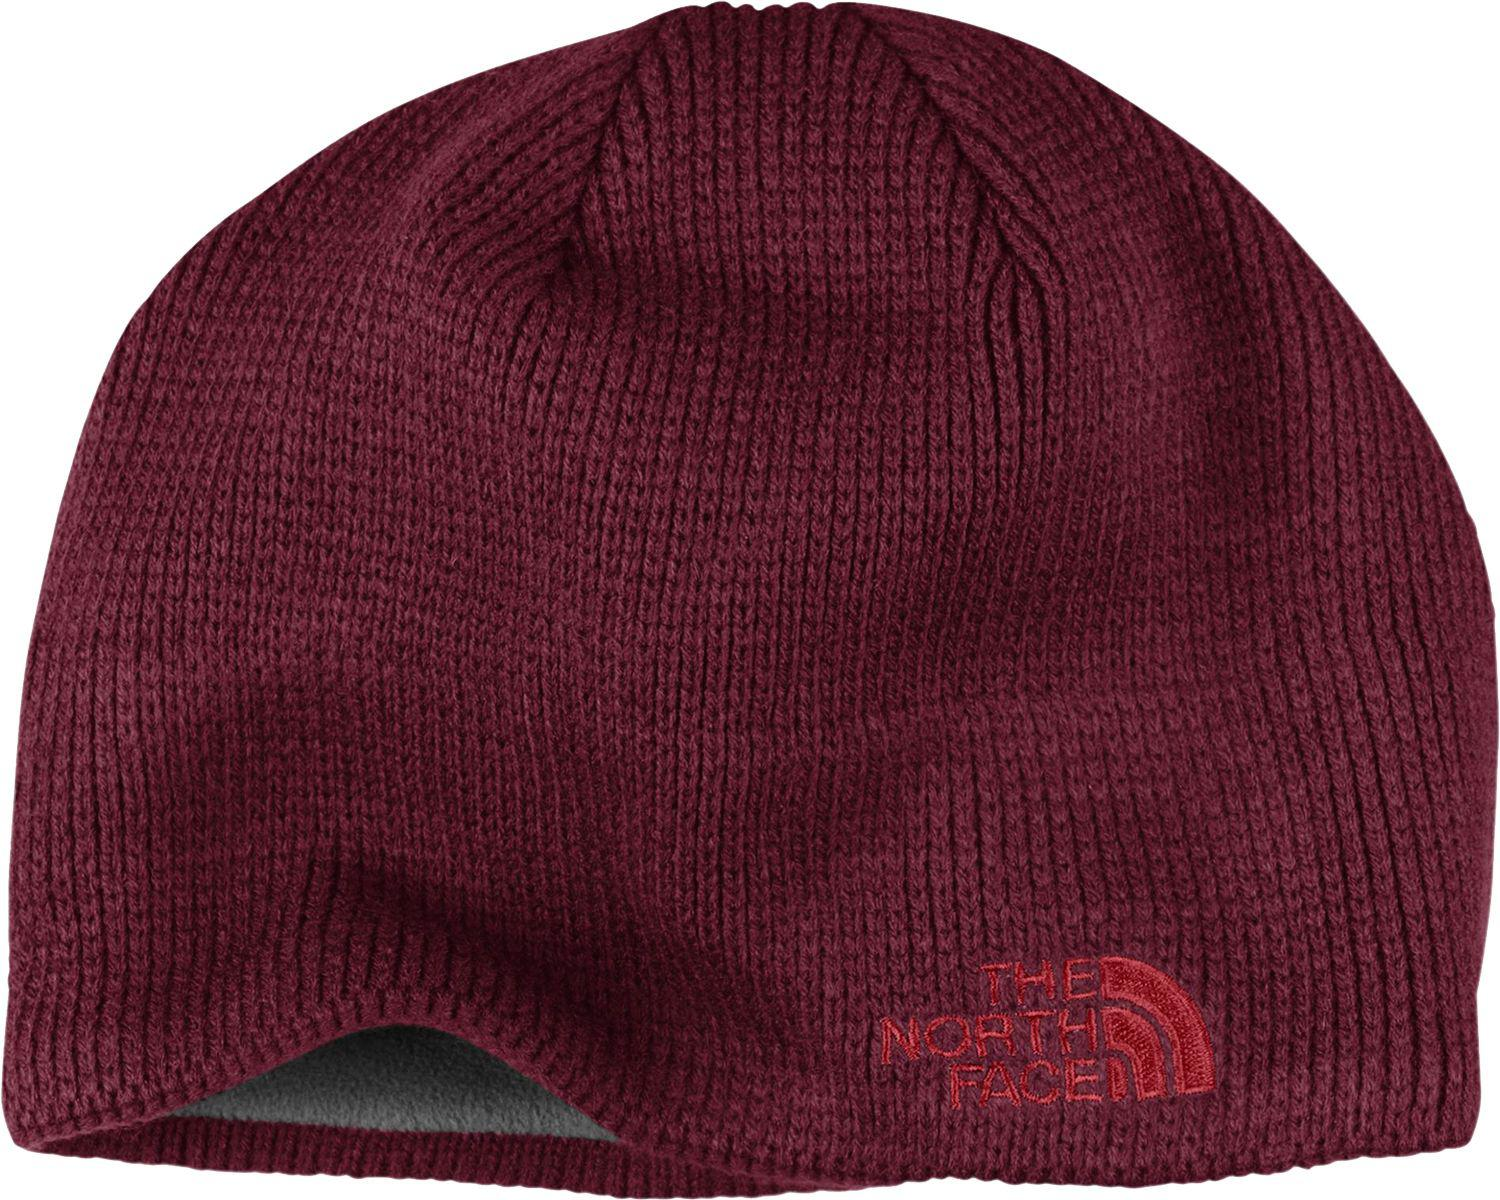 Lyst - The North Face Ones Beanie in Red for Men d7170d0cf3ca